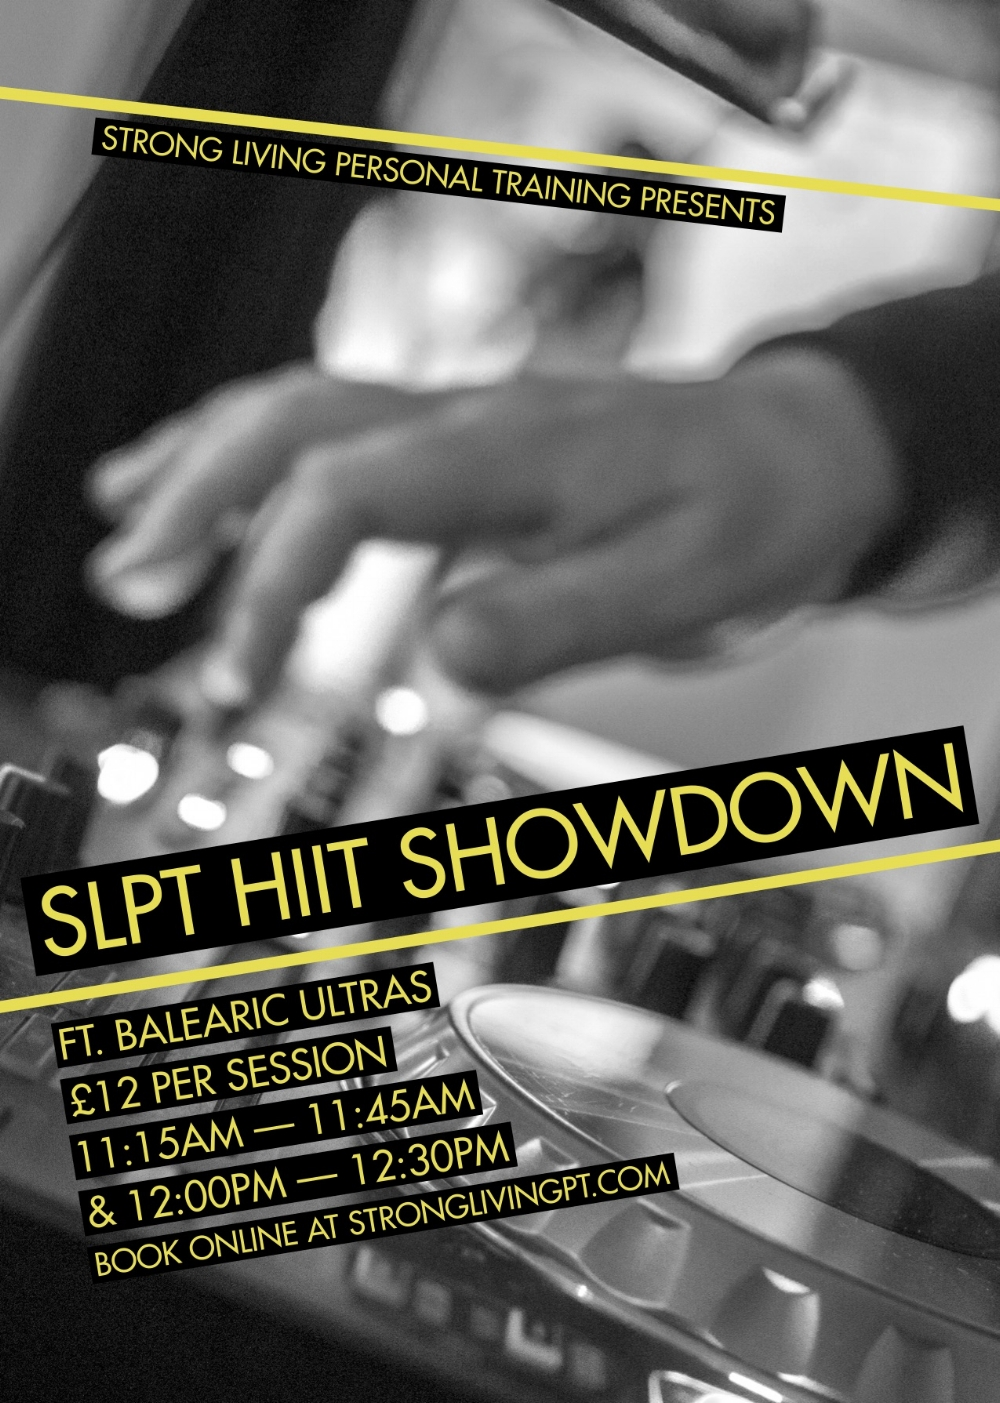 DJ HIIT SHOWDOWN